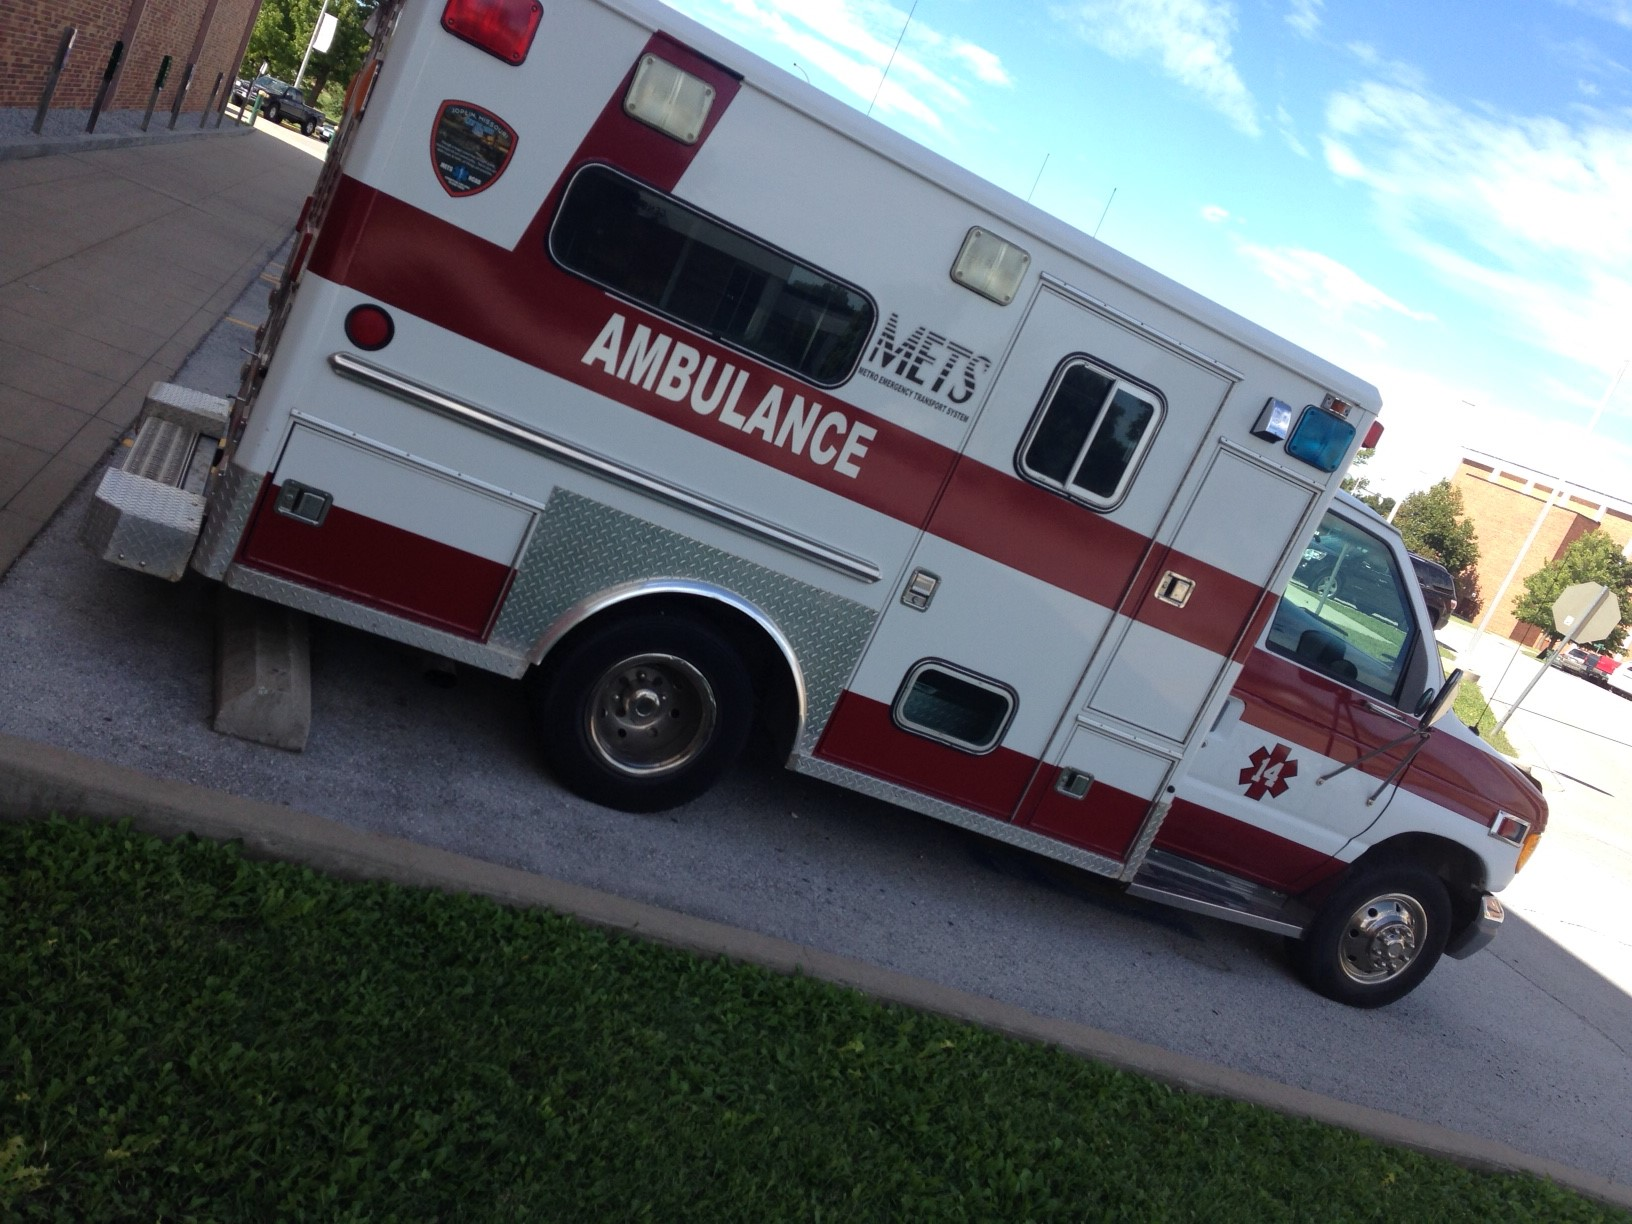 Ambulance donated to EMS department